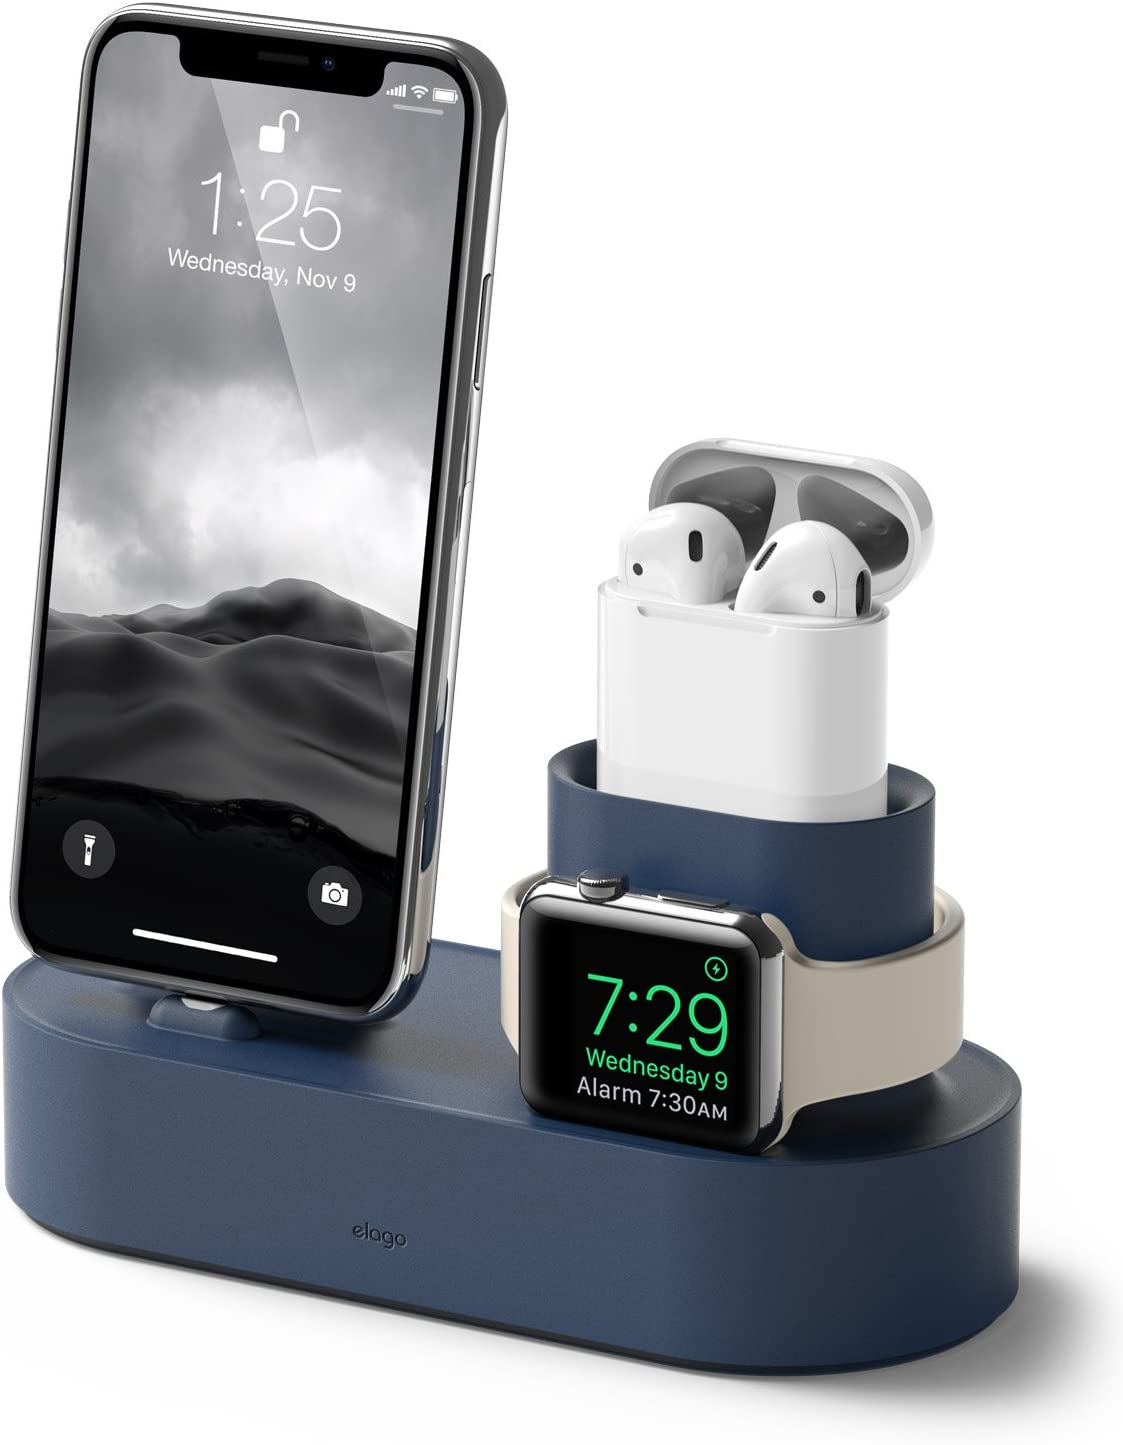 elago 3 in 1 Apple Charging Station Compatible with Apple Watch Series 6/SE/5/4/3/2/1, Apple AirPods 2/1, iPhone 11 and All iPhone Models [Original Cables Required] (Jean Indigo)